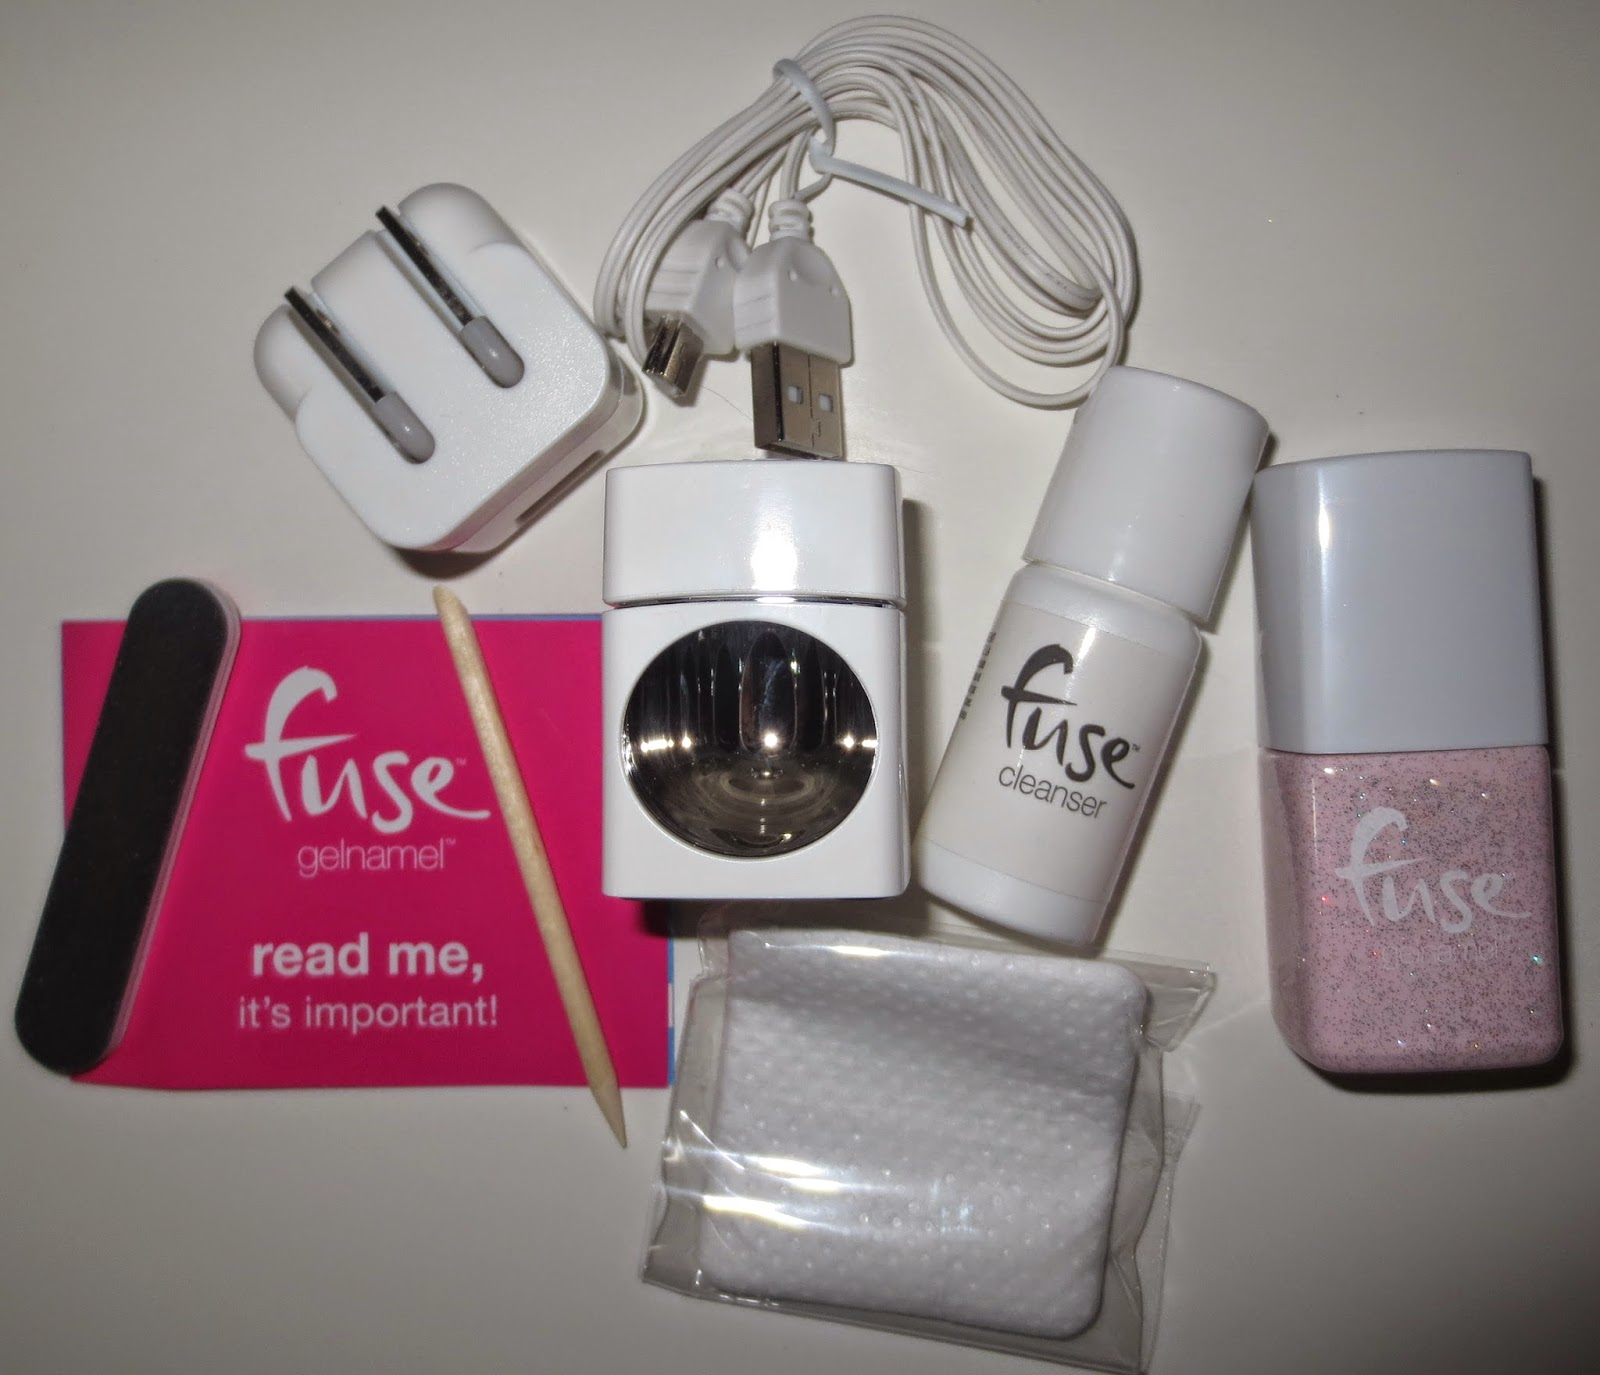 FUSE Gelnamel by SensatioNail Starter Kit